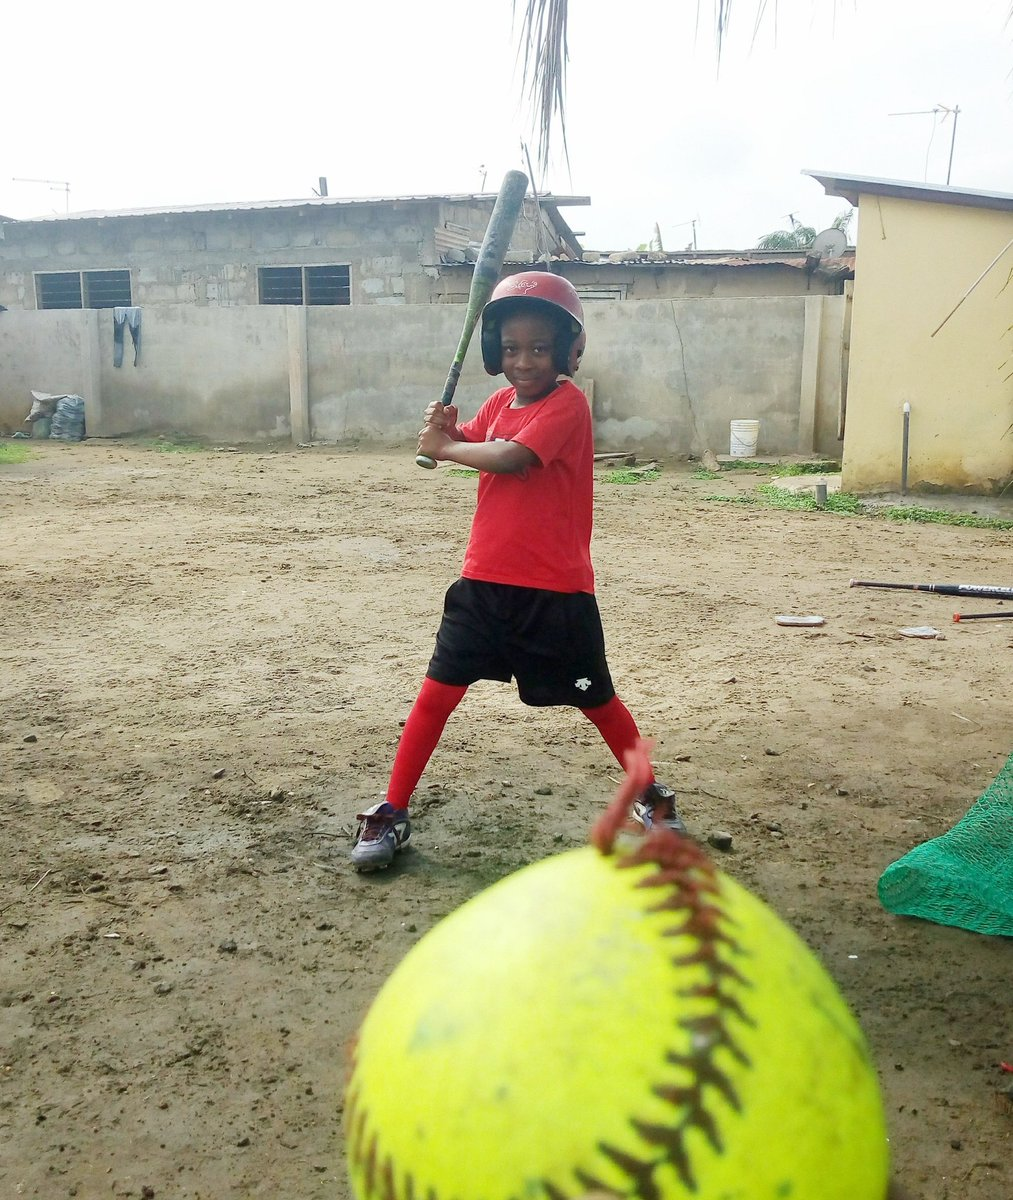 The girls are working so hard every time. Let's do some batting  practice! @14uGloryNaudin @16uGloryNaudin @EastonFastpitch @MLB @alyssag_94 @DainaMuoz4   #Helpspreadsoftballinthecommunities3 https://t.co/lPKC6hYTTD